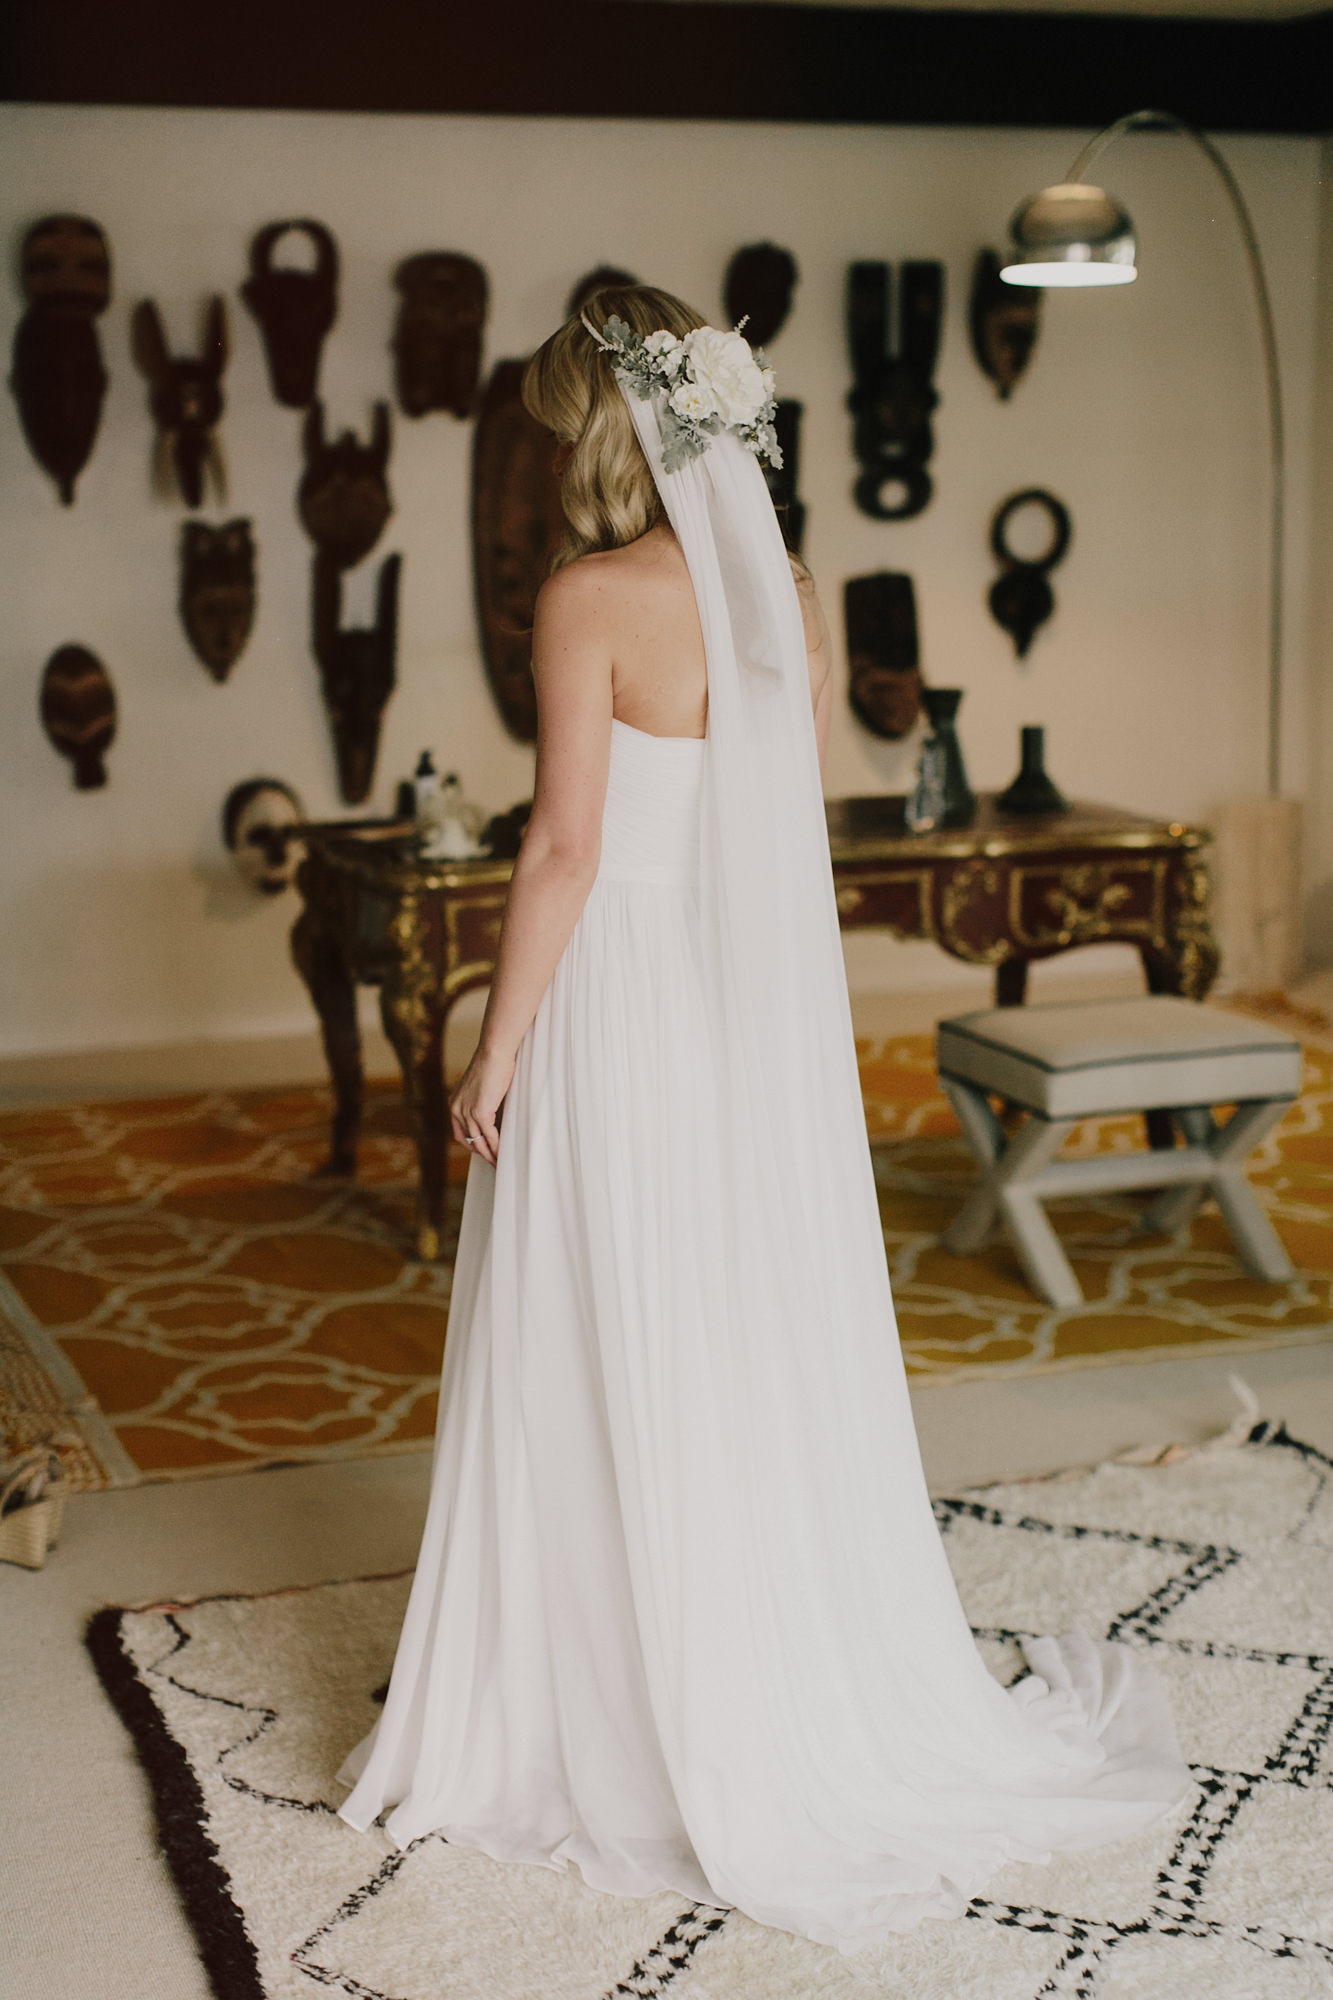 Photo of bride in long veil with white rose crown by James Moes